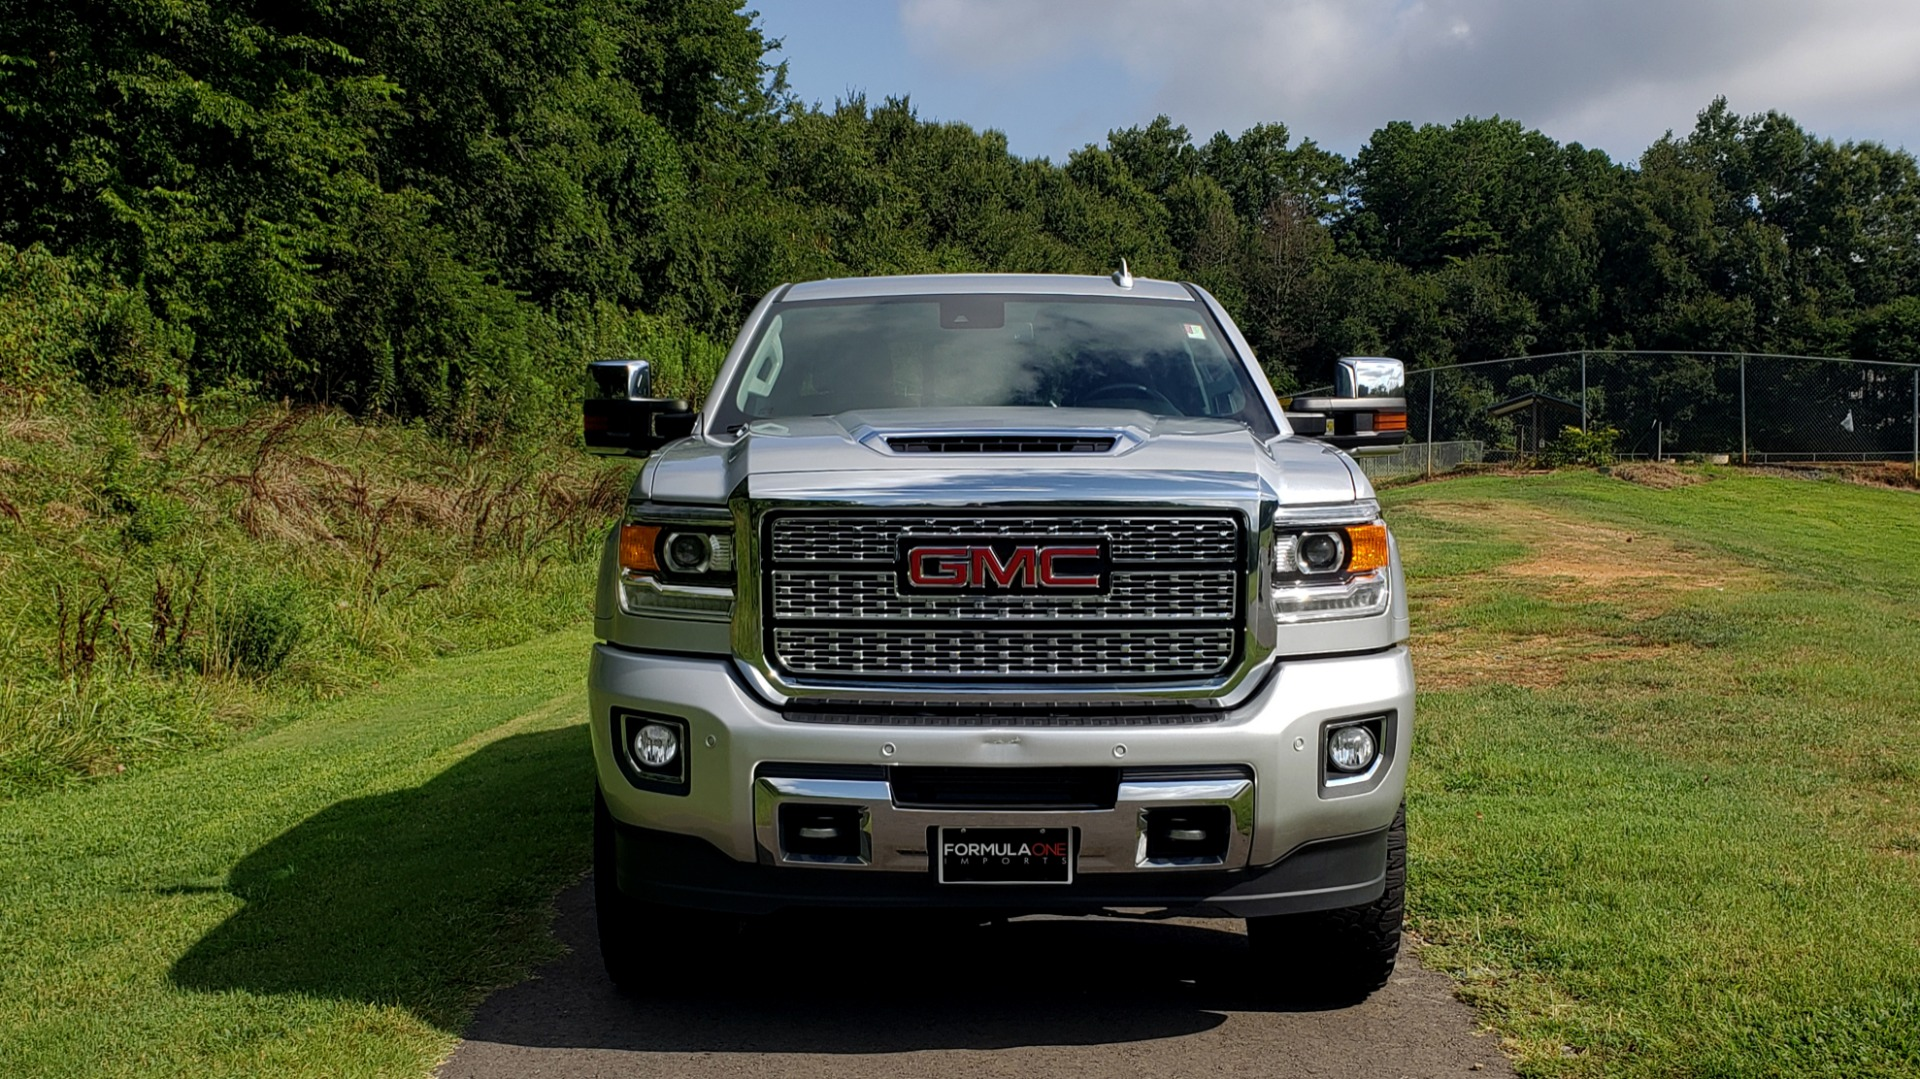 Used 2018 GMC SIERRA 2500HD DENALI 4WD / 6.6L DURAMAX / NAV / SUNROOF / BOSE / REARVIEW for sale Sold at Formula Imports in Charlotte NC 28227 7